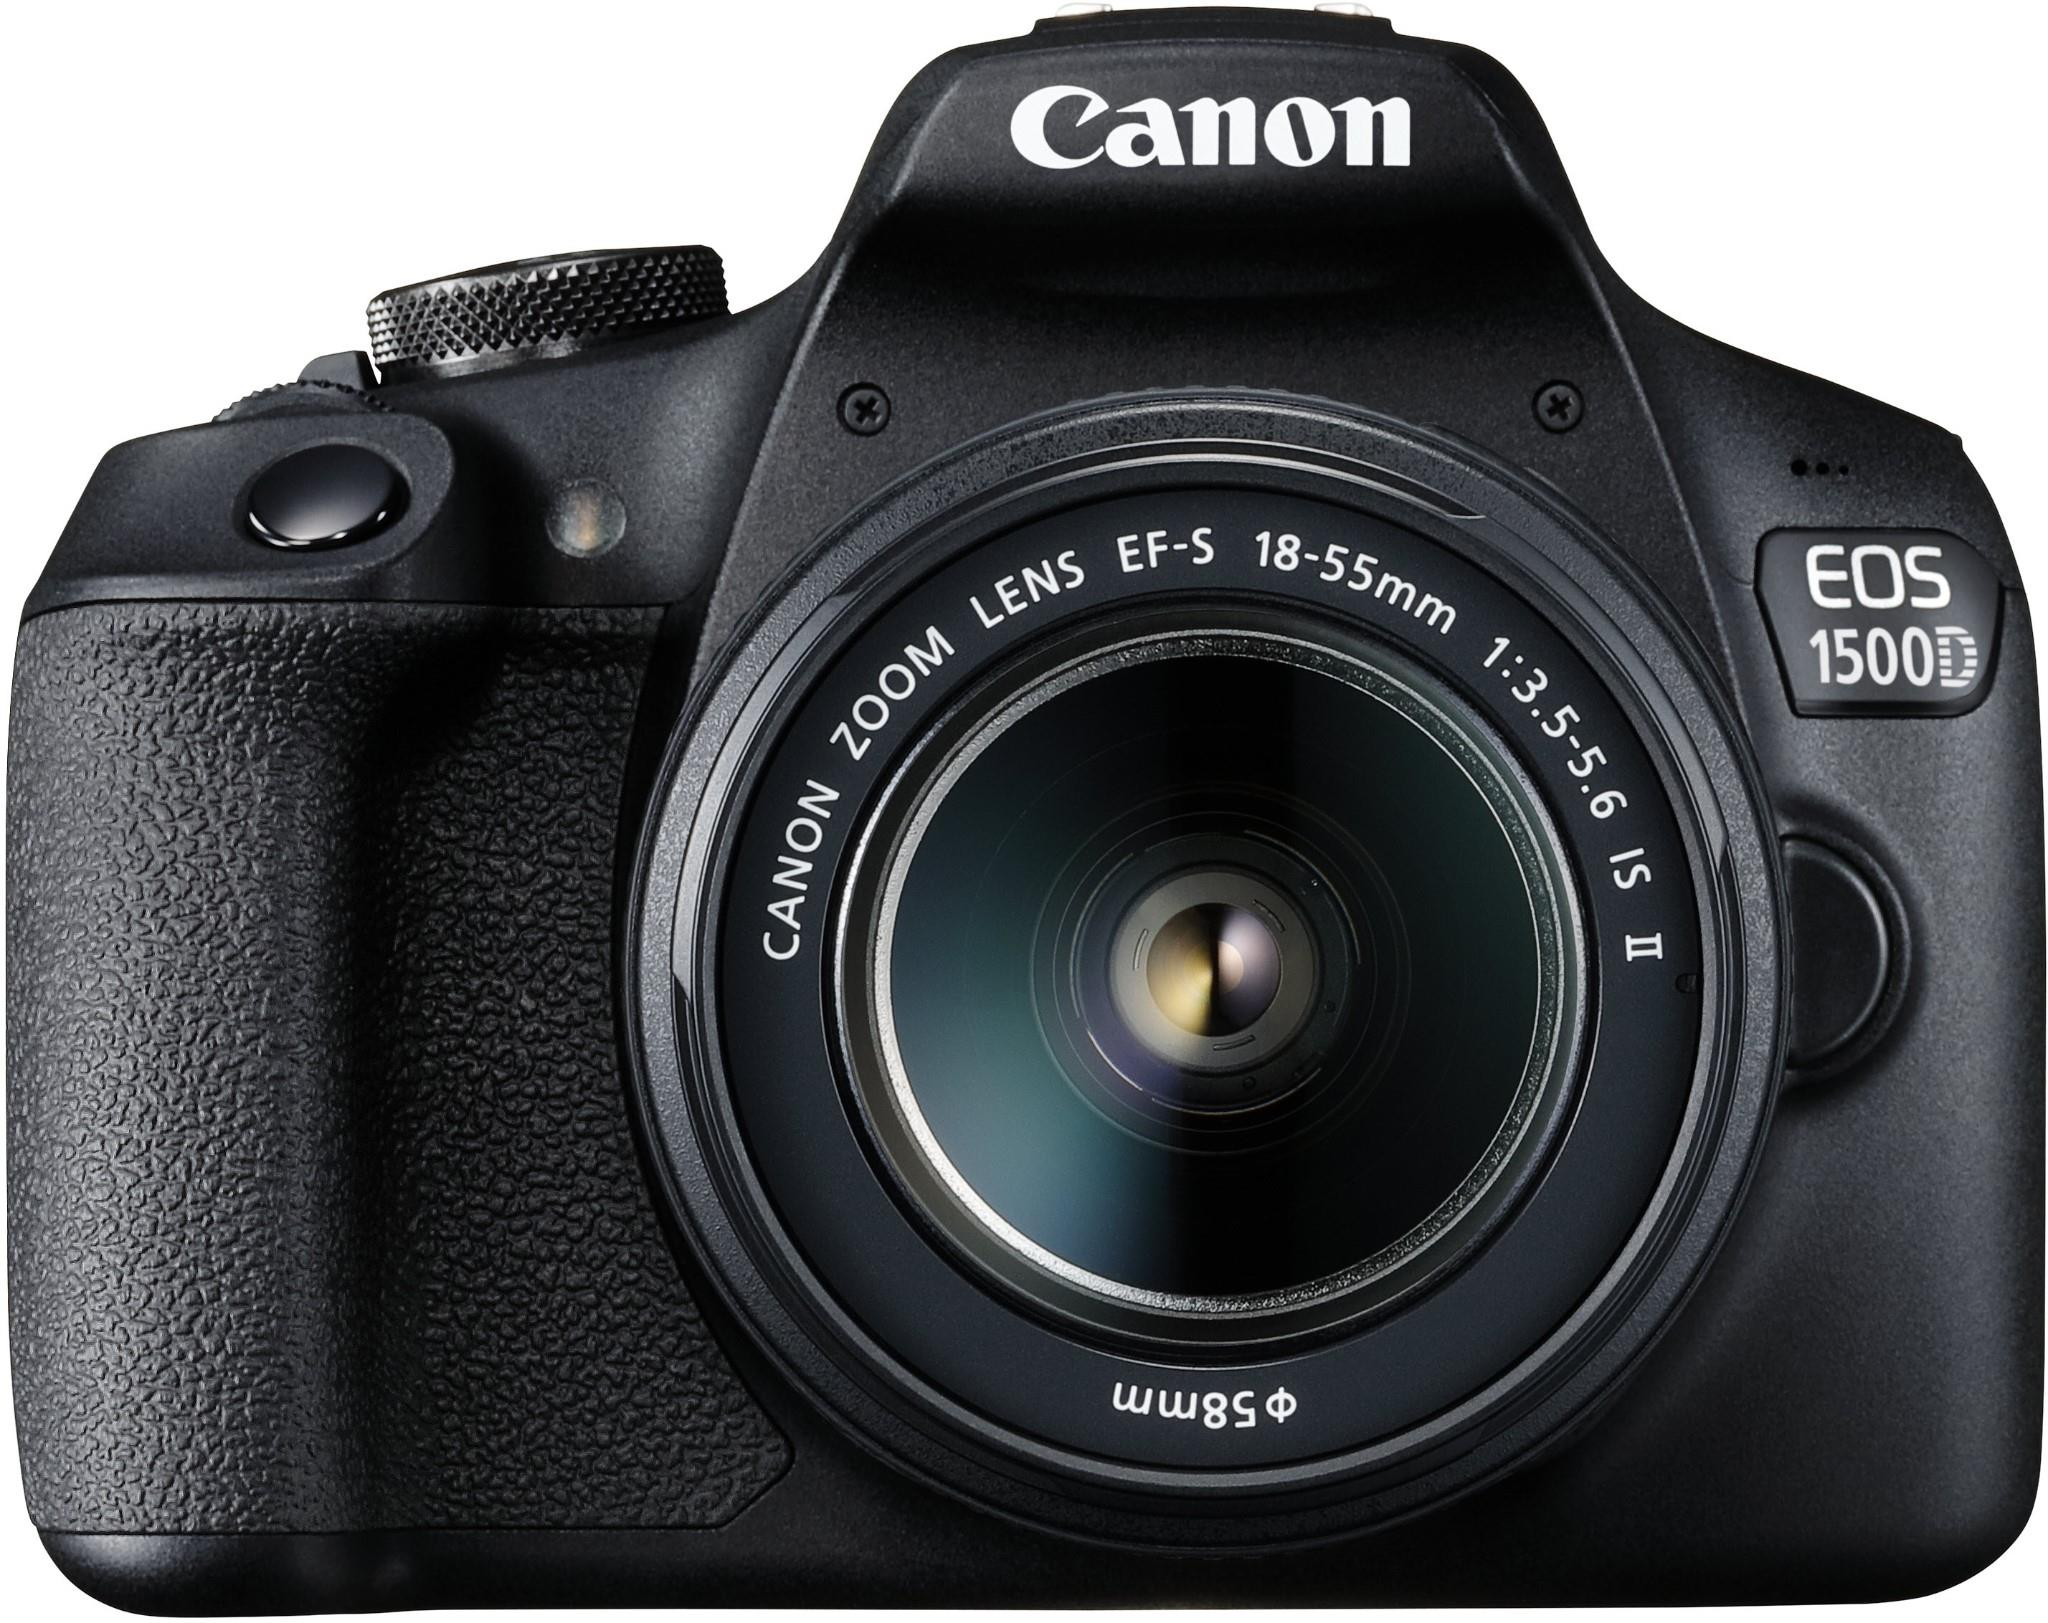 JB Education | Canon EOS 1500D DSLR Camera with 18-55mm Lens